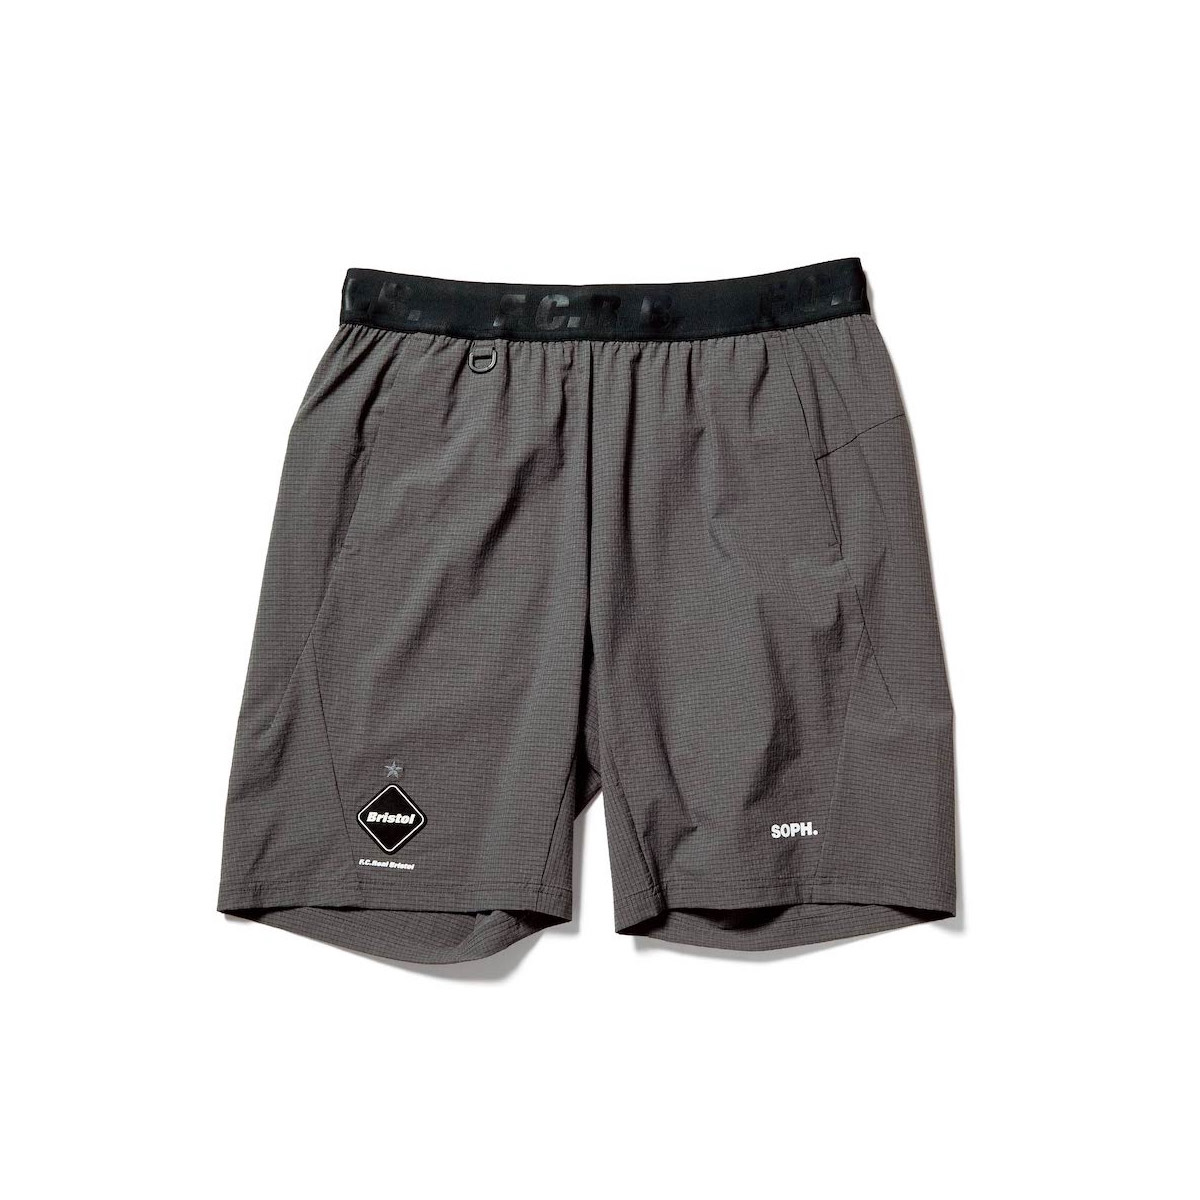 F.C.Real Bristol / STRETCH LIGHT WEIGHT EASY SHORTS (Gray)正面